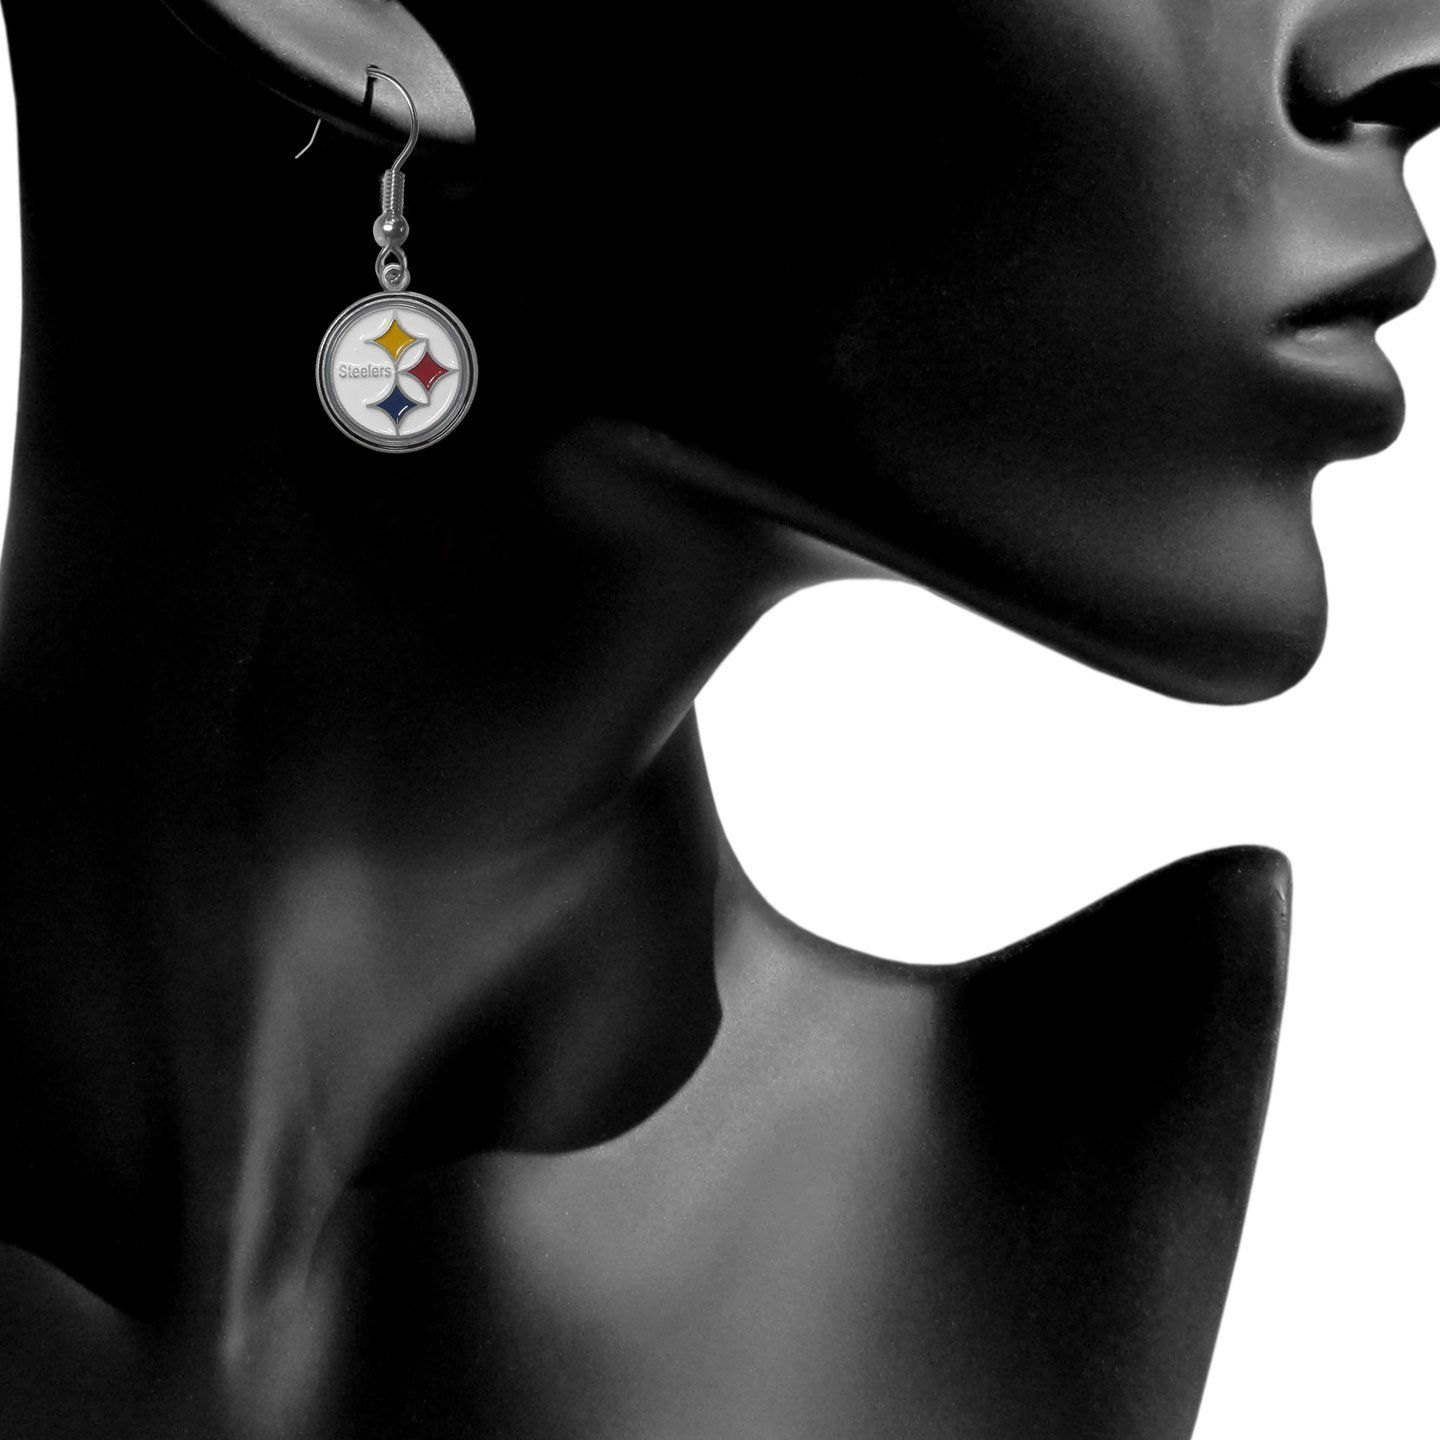 NFL Pittsburgh Steelers Dangle Earrings – See more at: http://jewelry.florentta.com/jewelry/novelty-jewelry/nfl-pittsburgh-steelers-dangle-earrings-com/